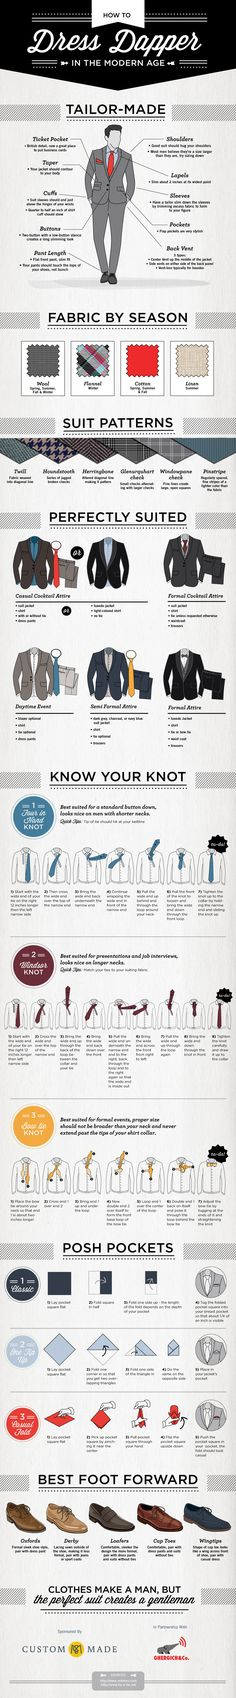 Men's Style: How to dress dapper in the modern age [Infographic by CustomMade]